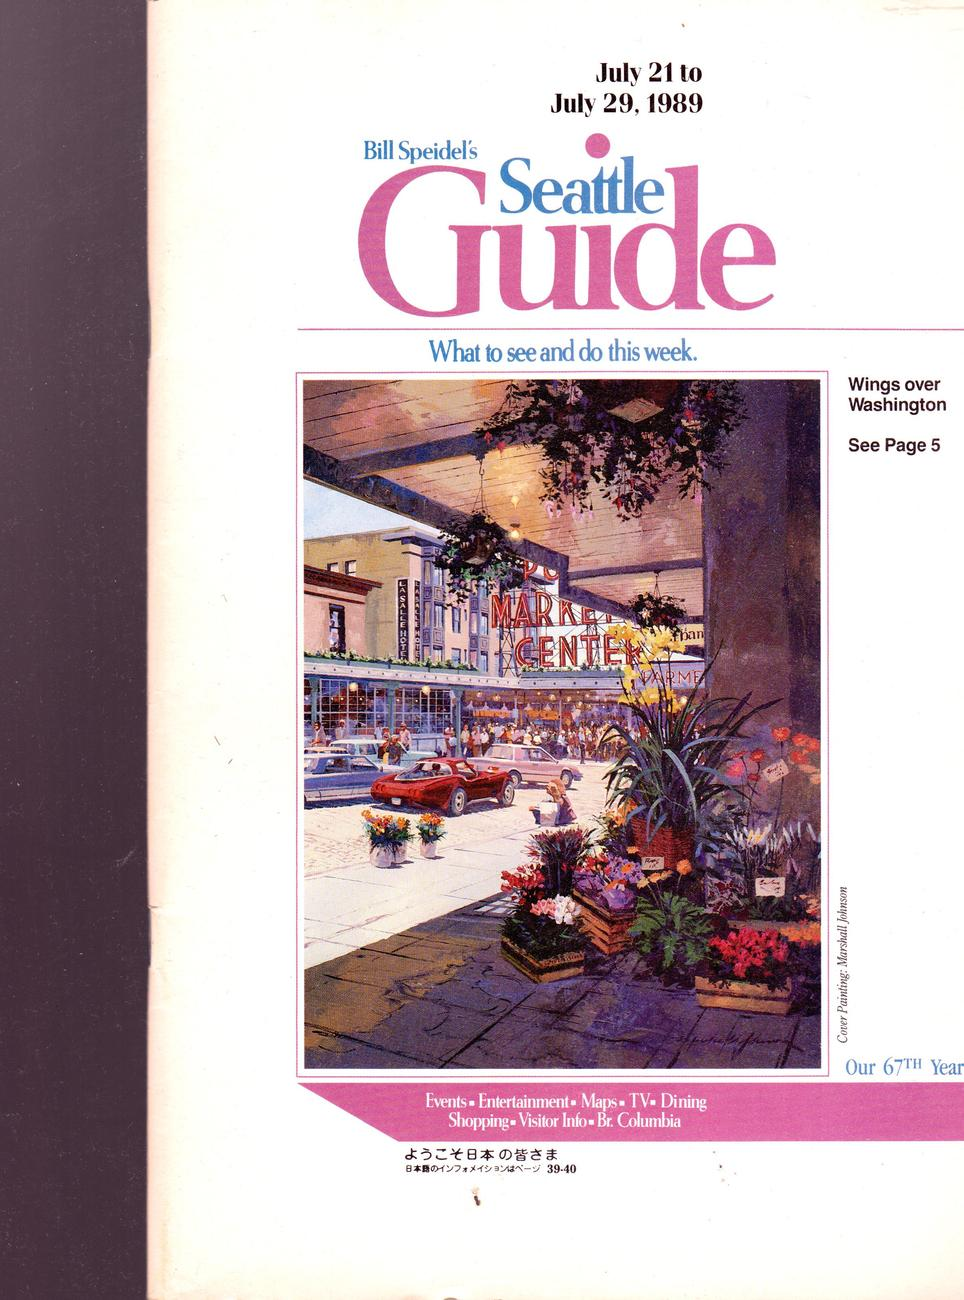 Seattle Guide July 21 to July 29,1989